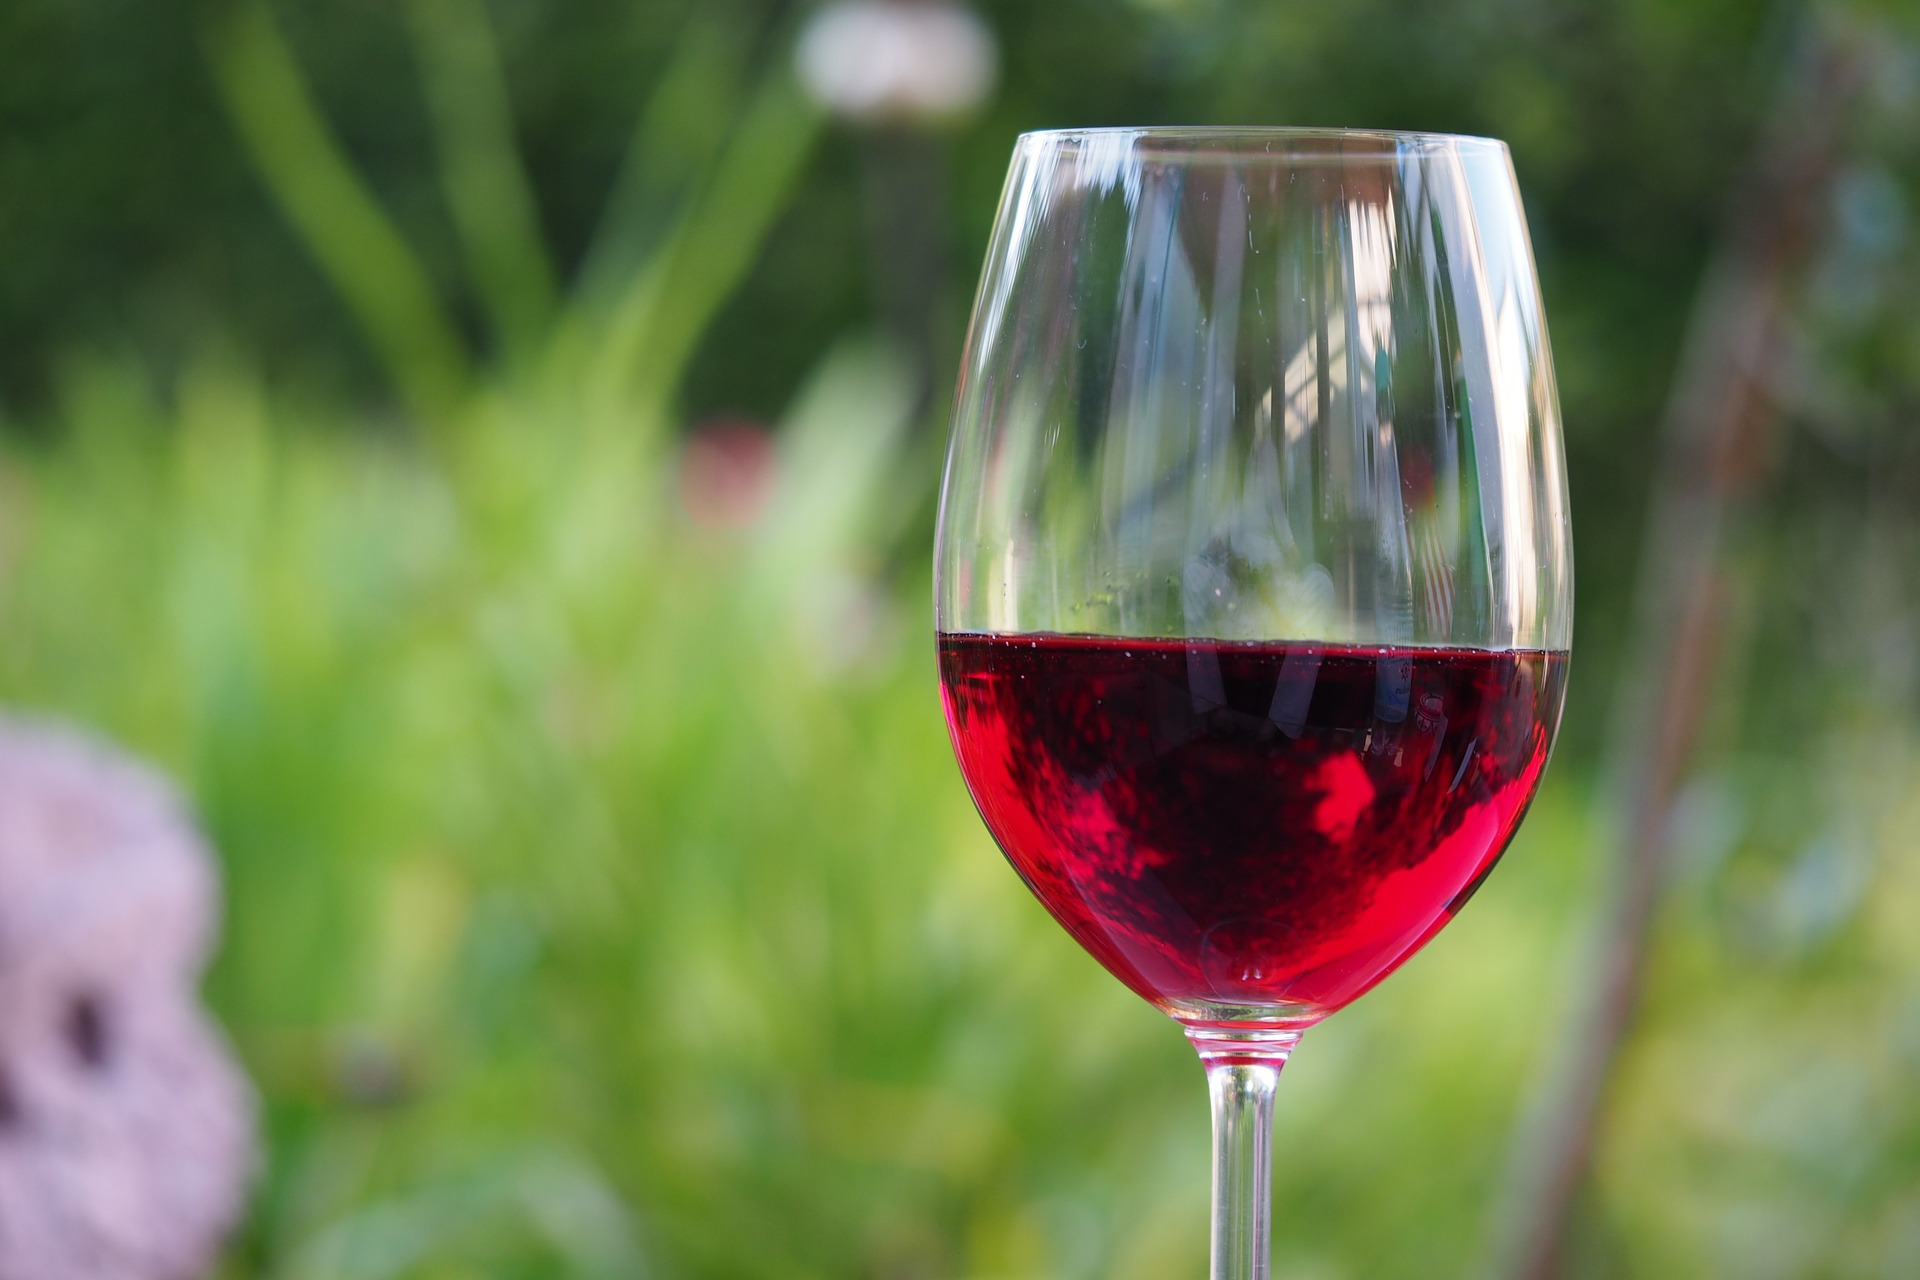 glass of red wine with green grassy background